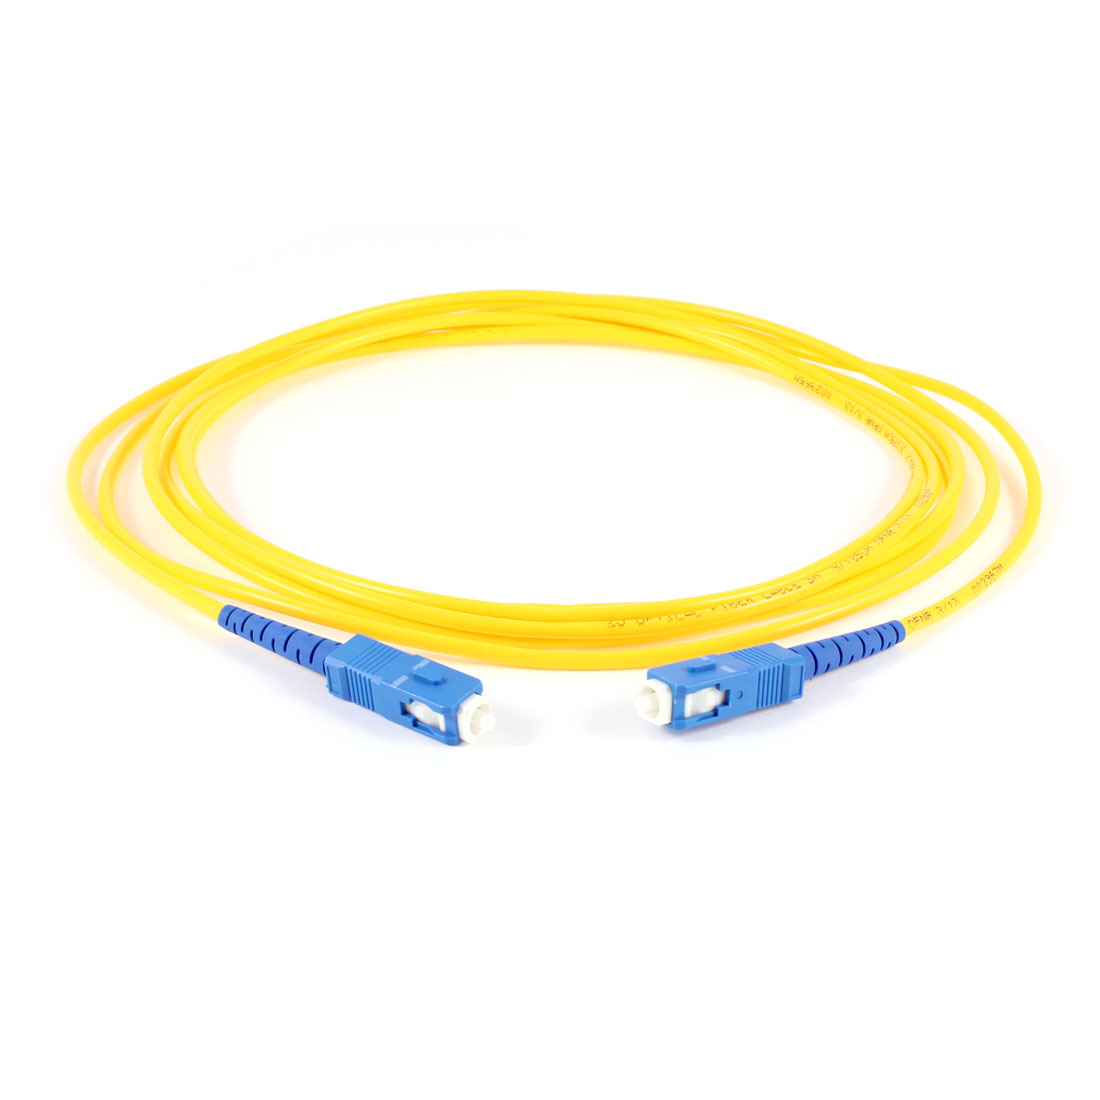 Yellow 10ft 3Meter Fiber Optic Cable SC to SC SM Single Model SX 9/125 3.0